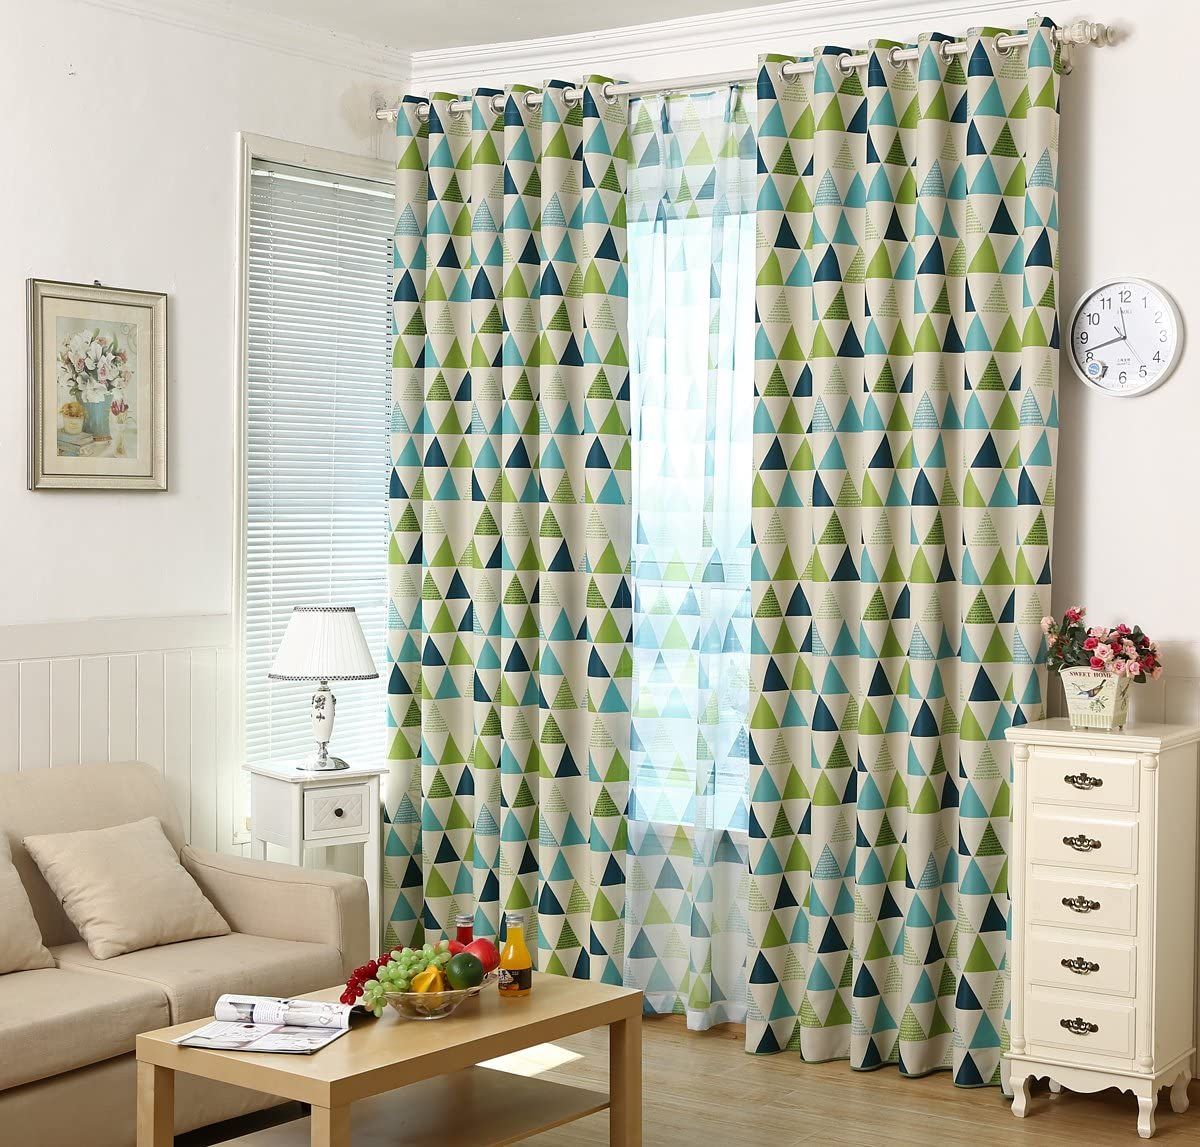 MYRU 2 Panels Set Geometric Triangle Grommet Top Room Darkening Curtains for Boys Girls Kids Room Green, 2 x 54×84 Inch